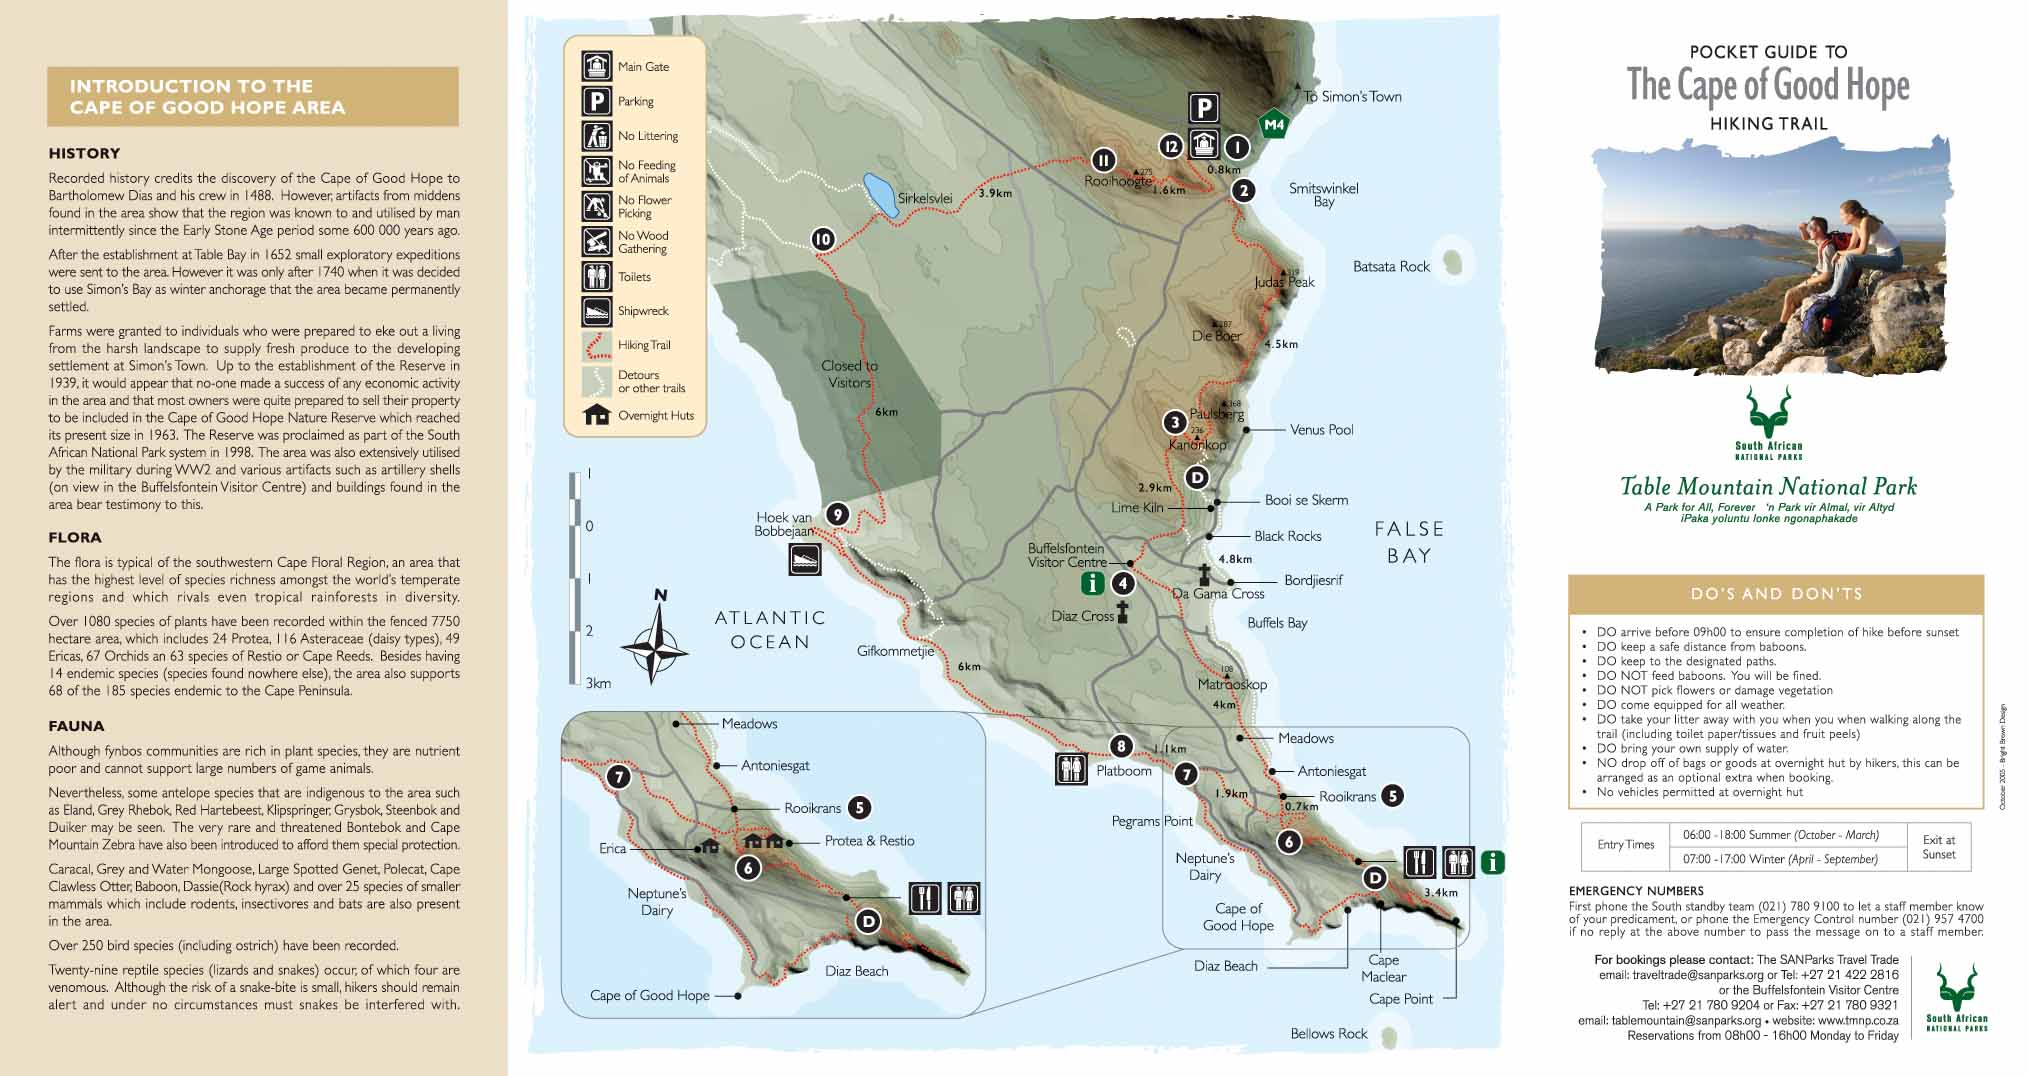 Capo di Buona Speranza - Mappa del Trekking - Table Mountain National Park